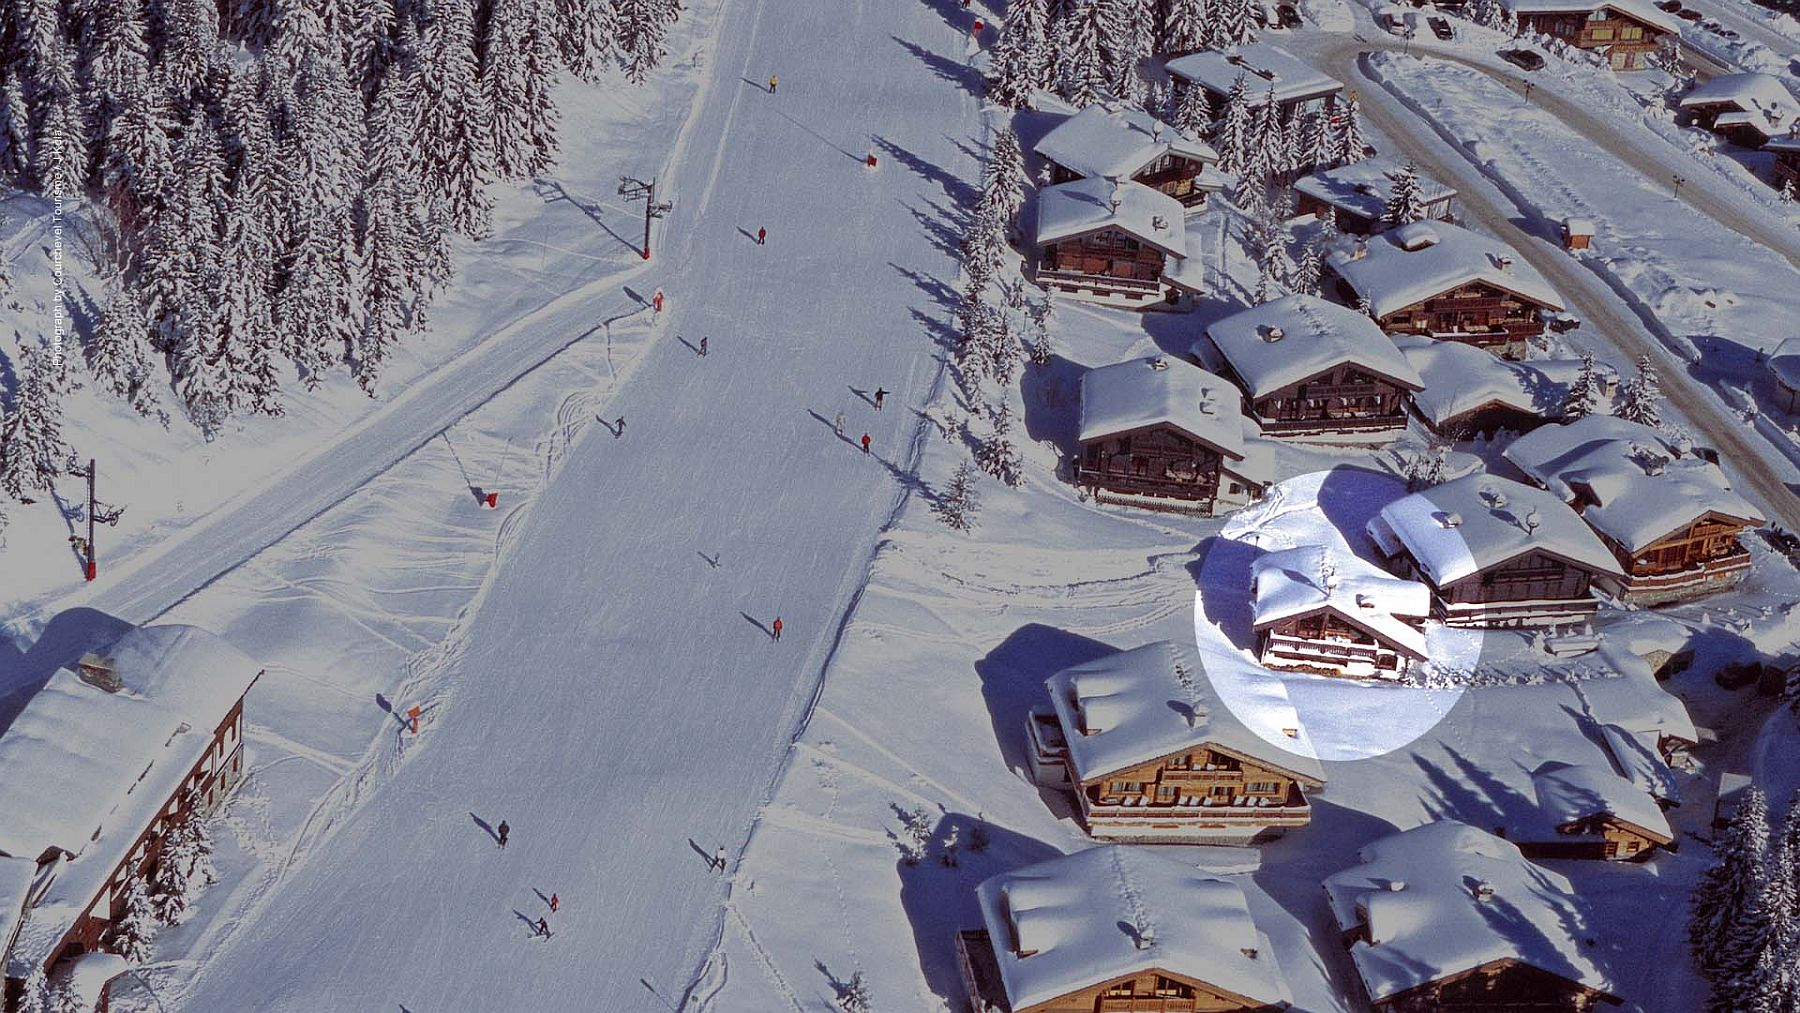 Aerial view of Chalet Le Namaste with ski slopes around it